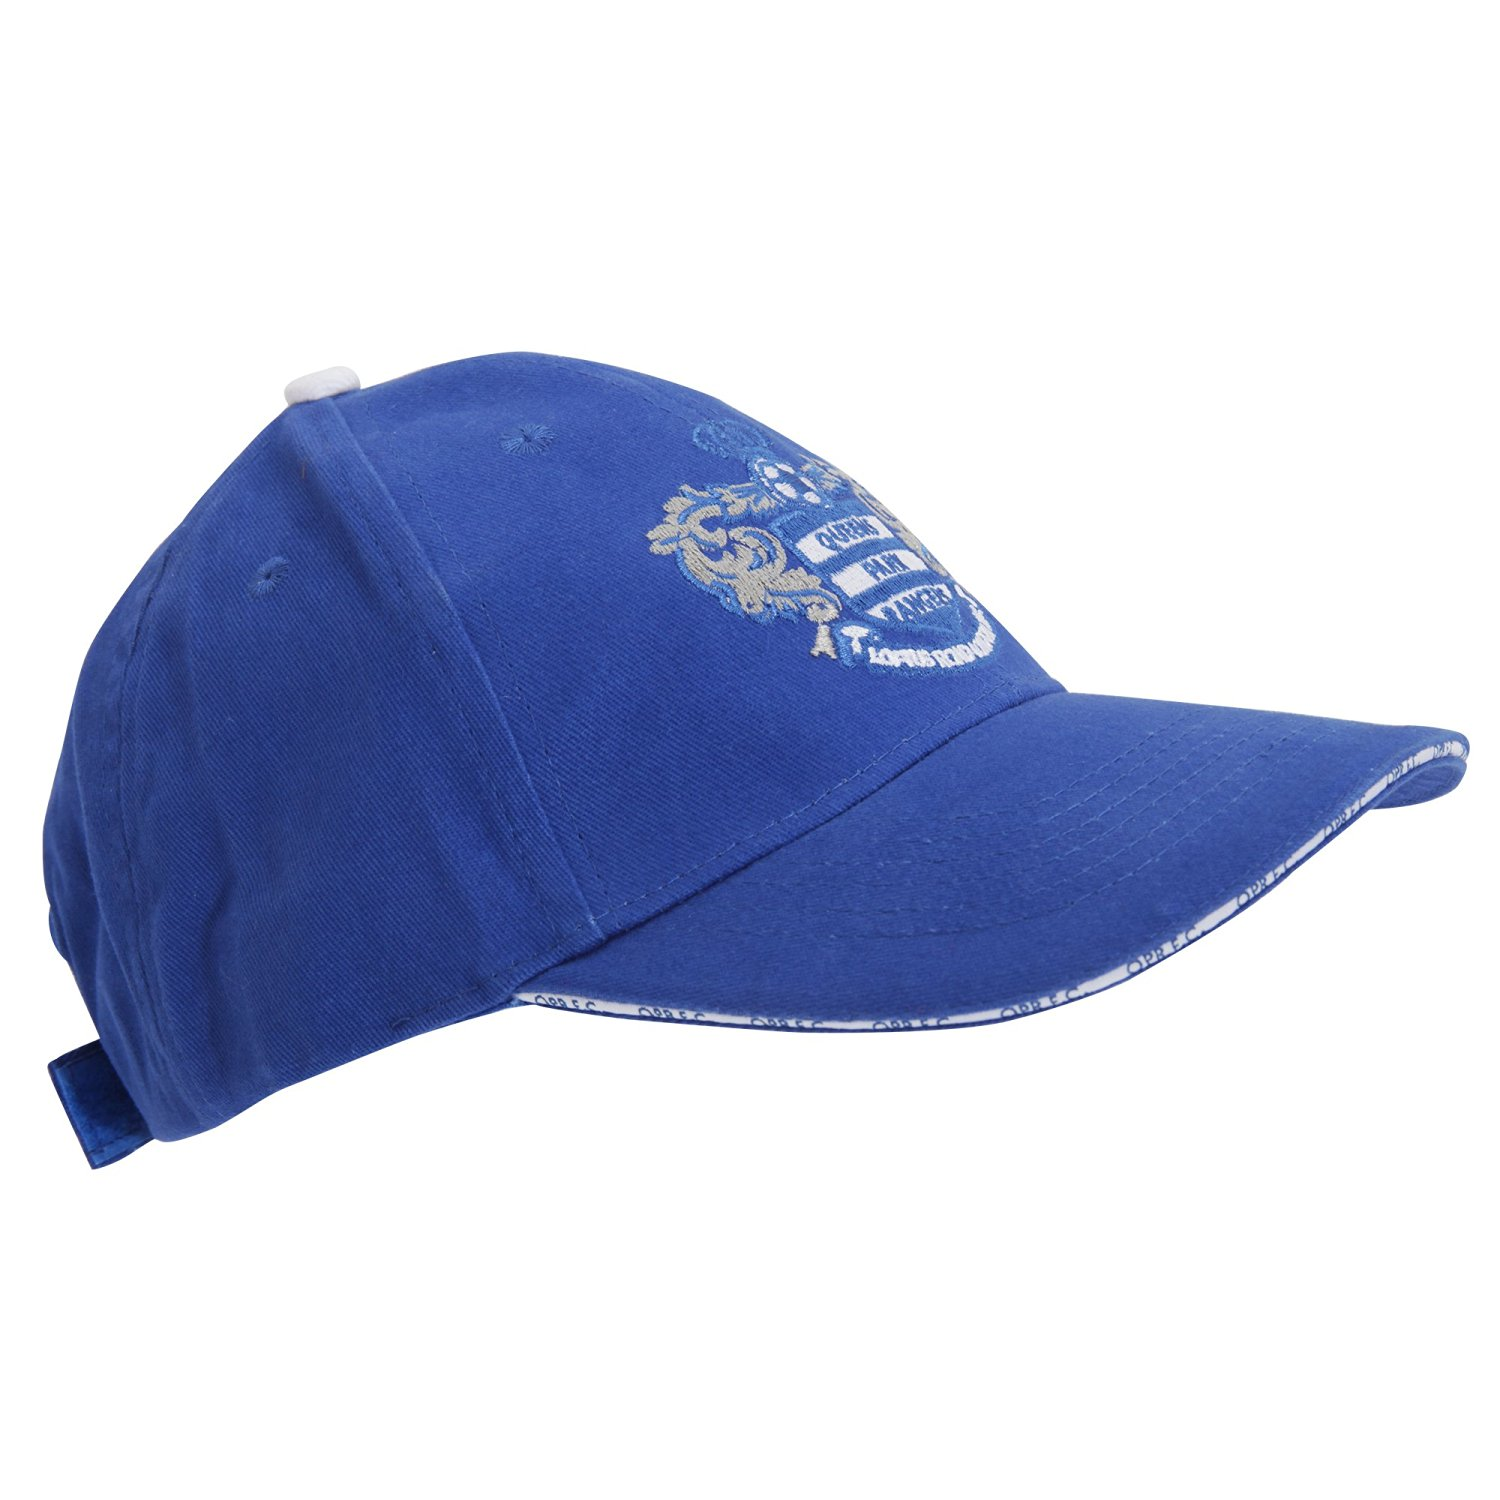 Buy Queens Park Rangers Baseball Cap - Royal in Cheap Price on ... ac6068c2588